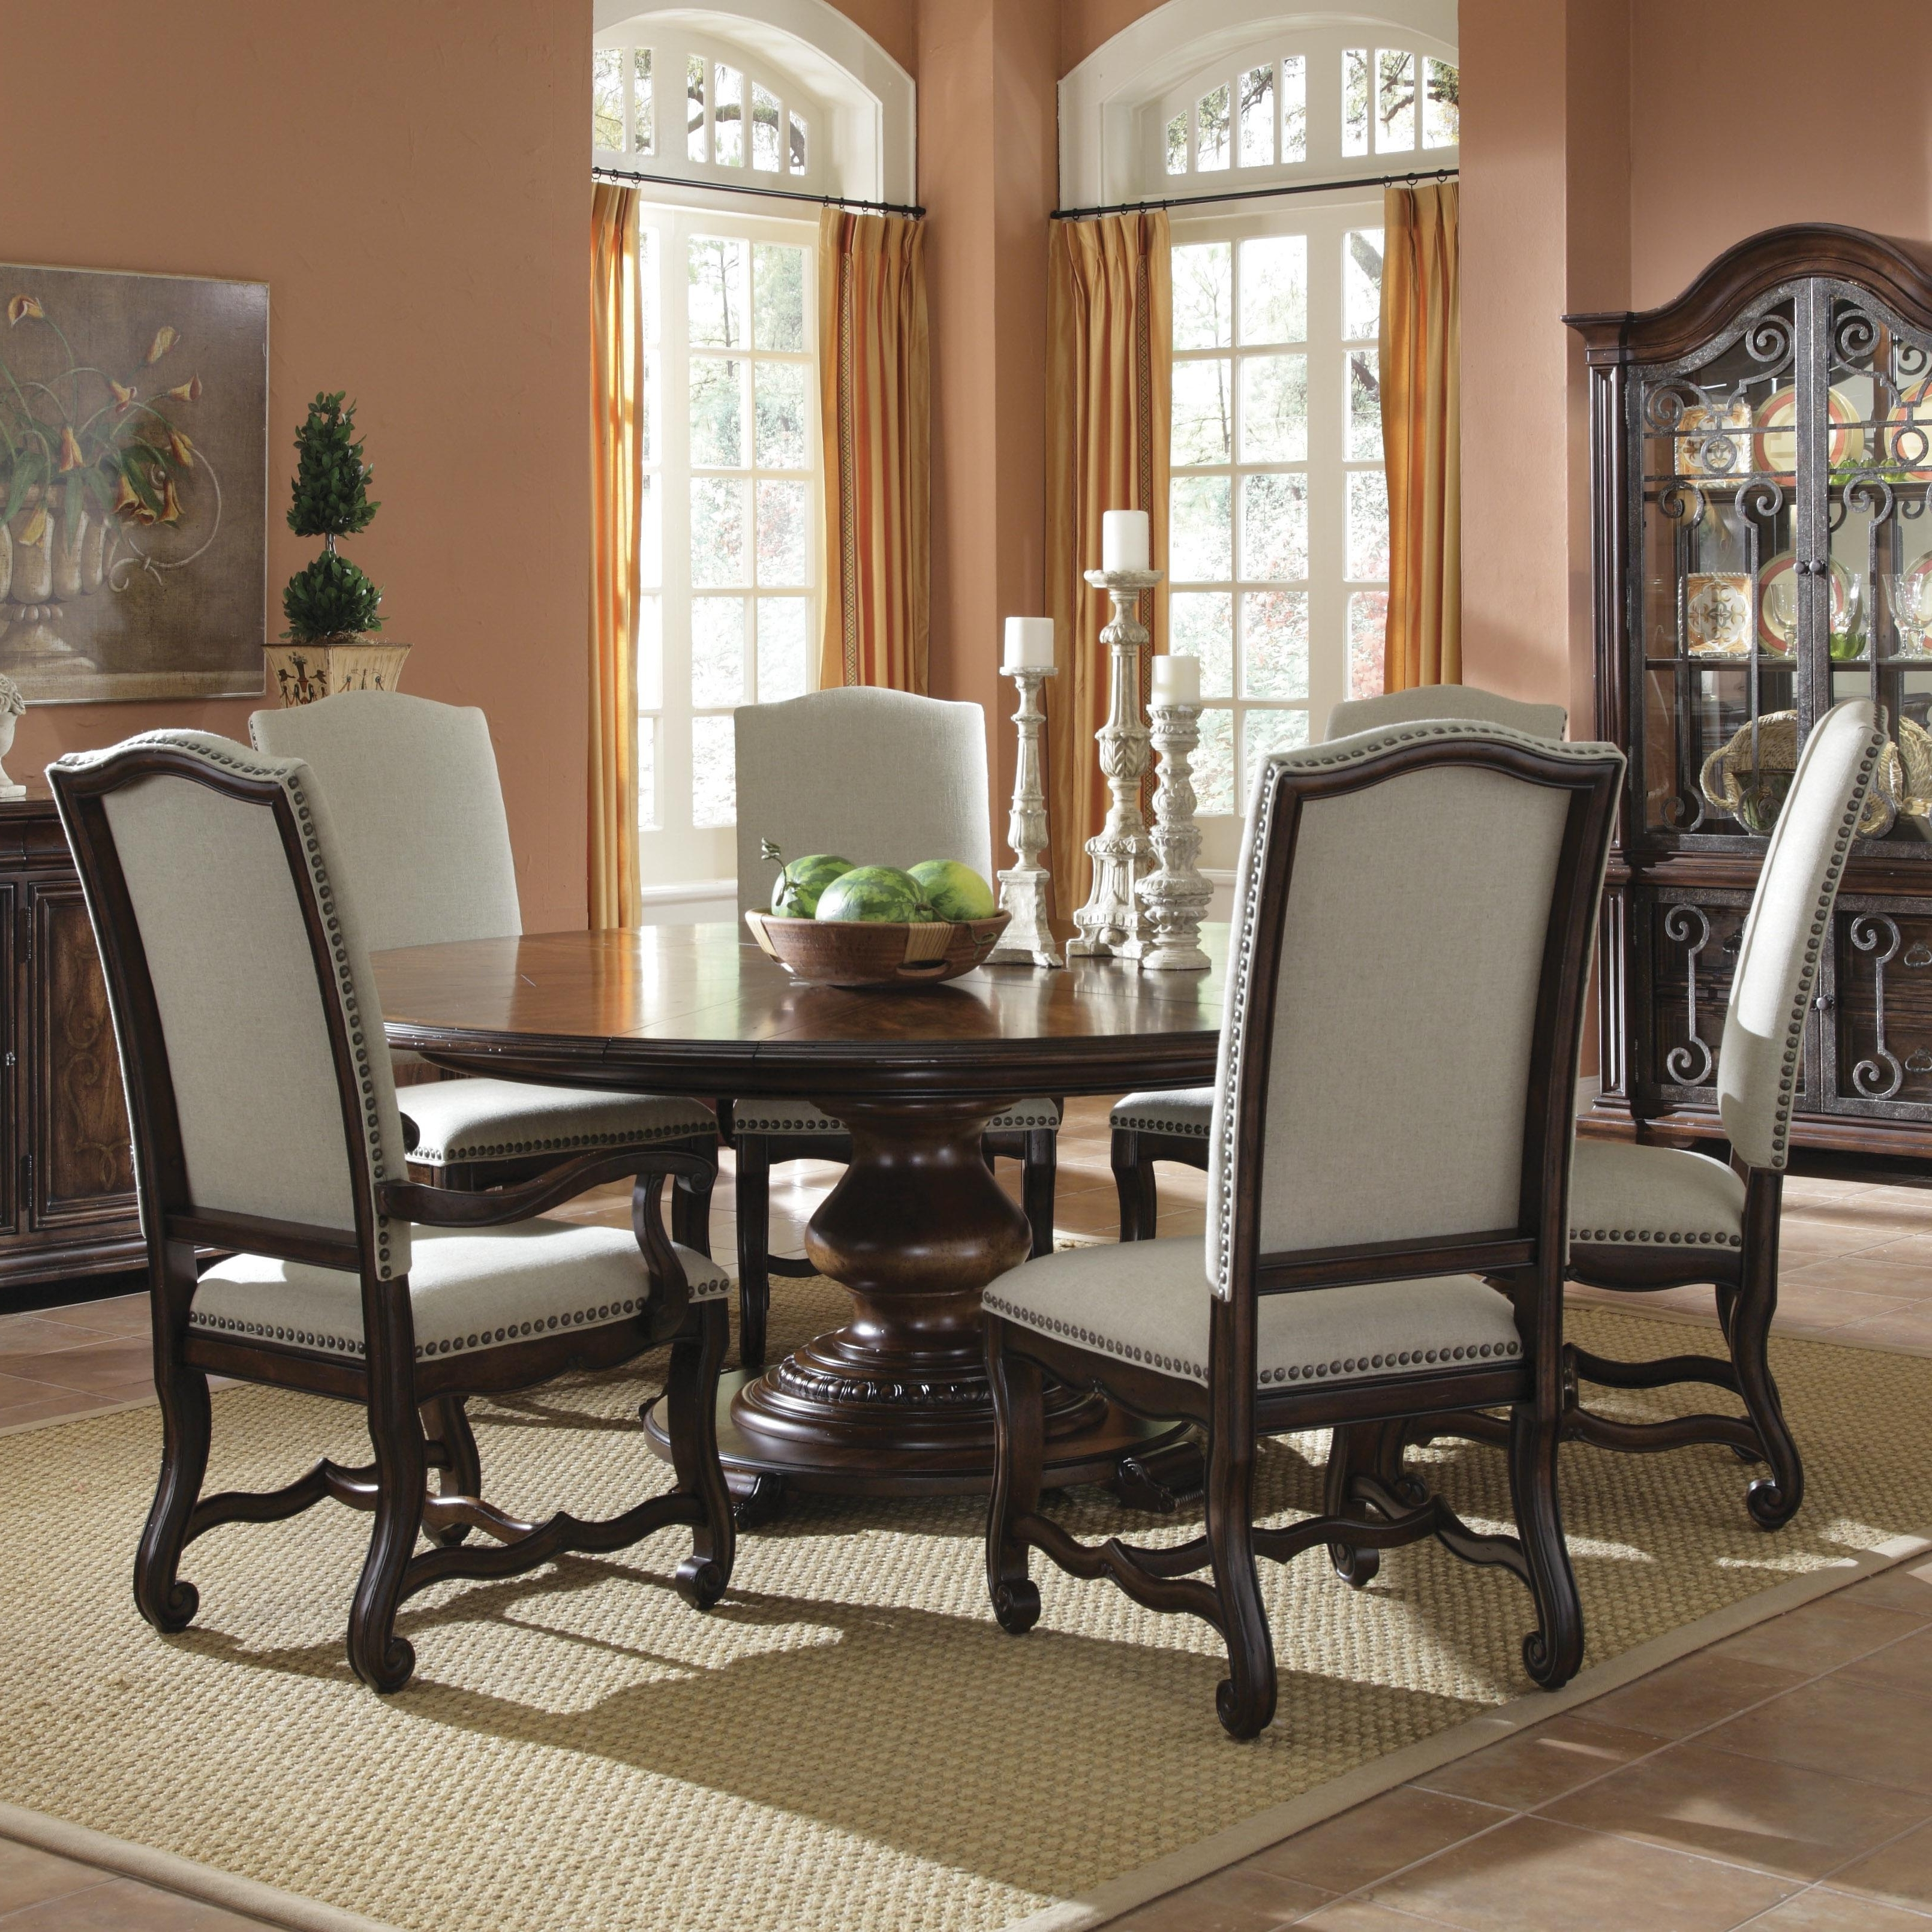 6 Seater Round Dining Tables Within Best And Newest Decorating Nice Dining Table Set 6 Seater Formal Room Ideas Casual (View 21 of 25)